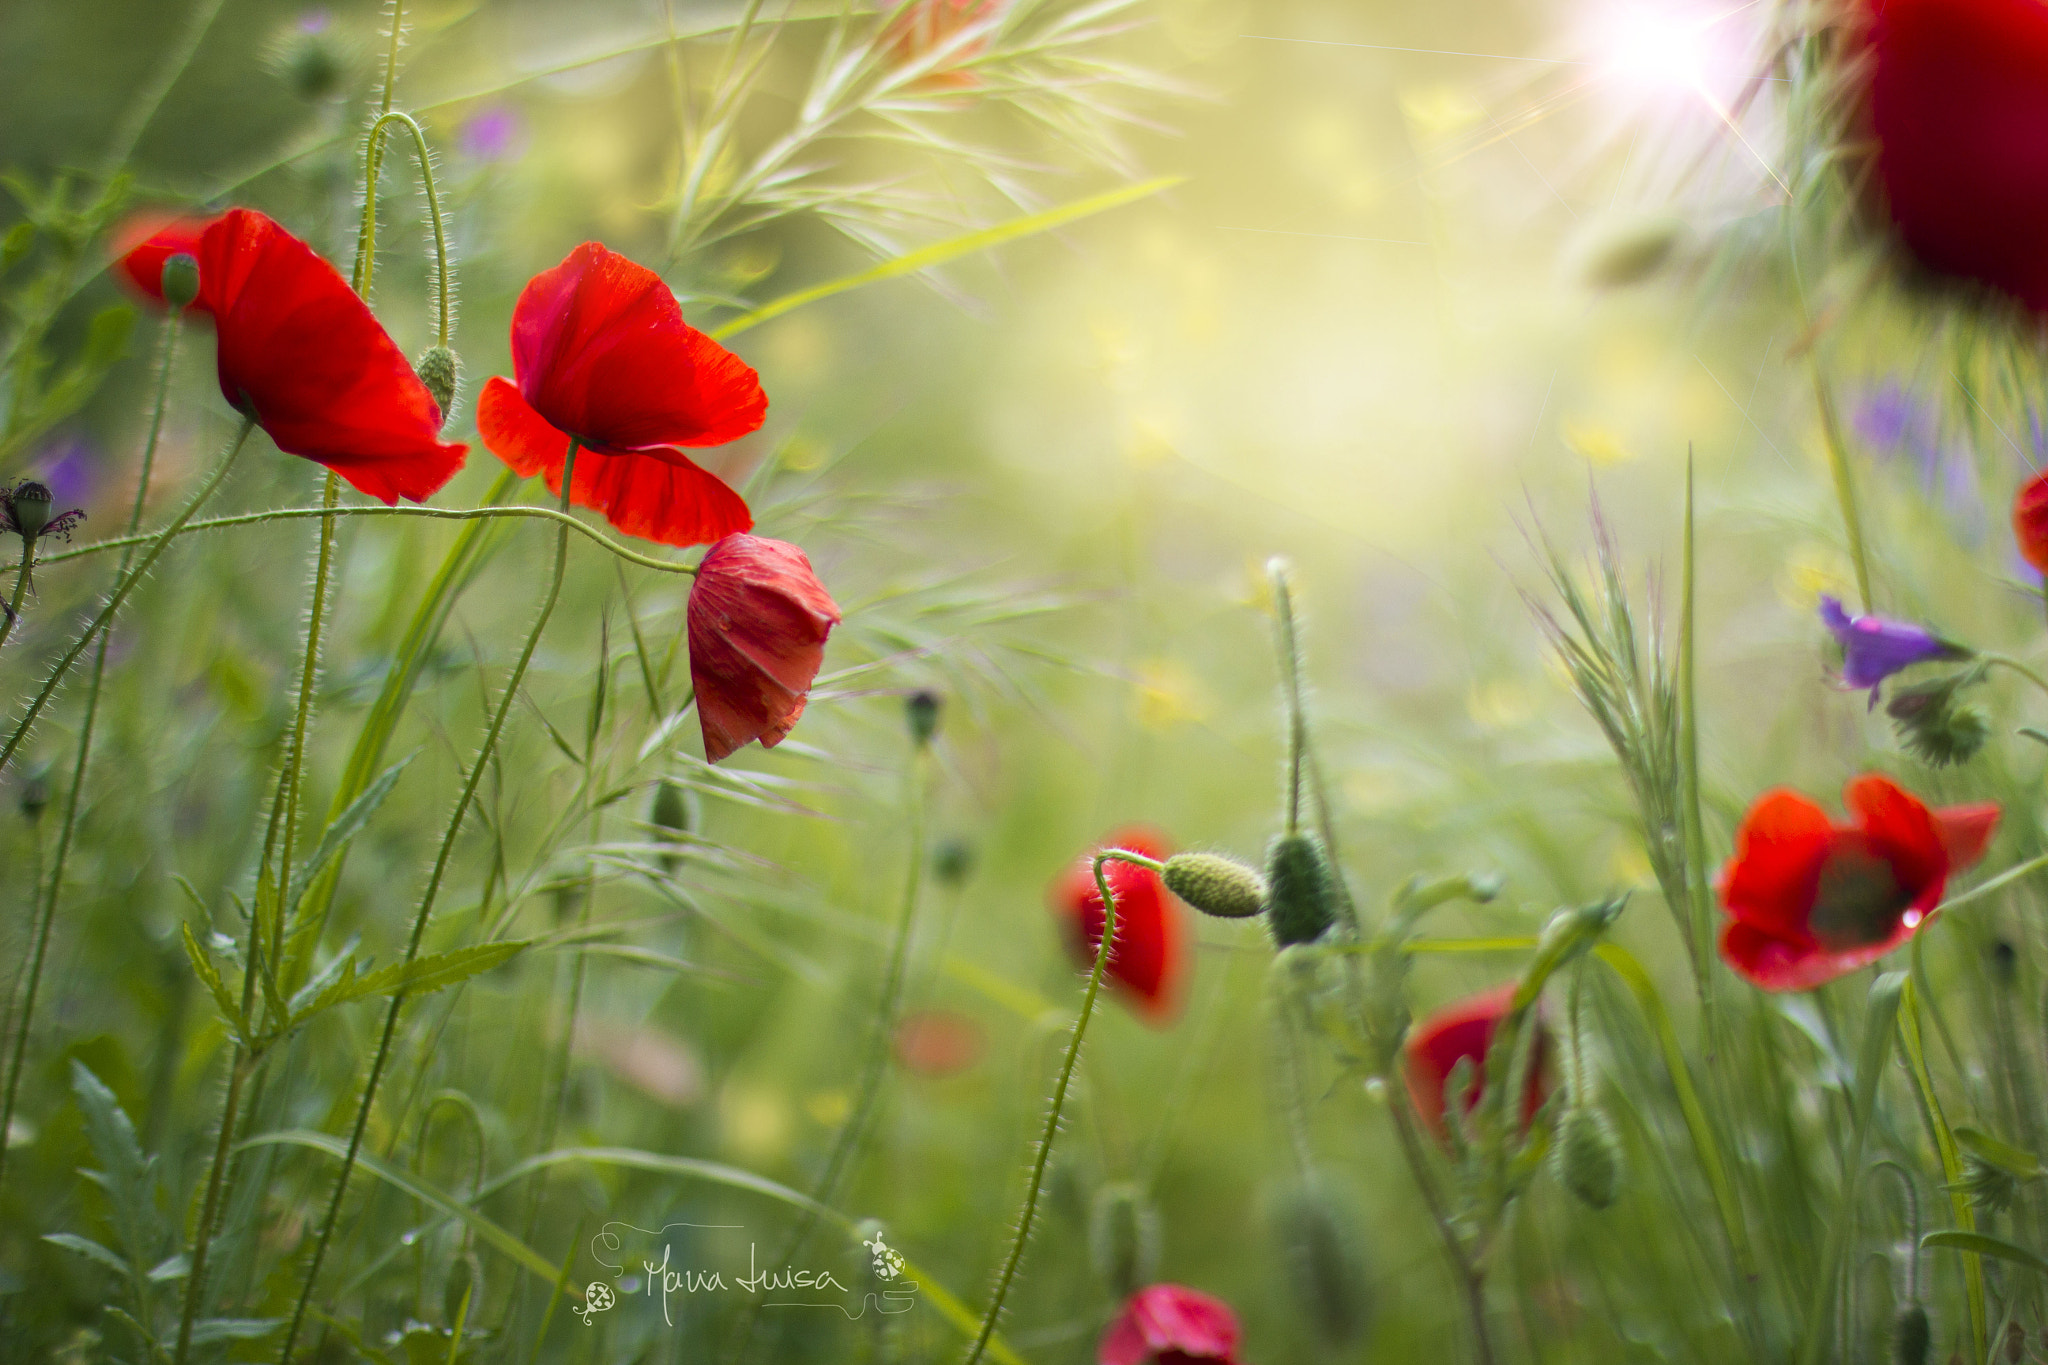 Photograph mess in the field by Maria Luisa Milla on 500px